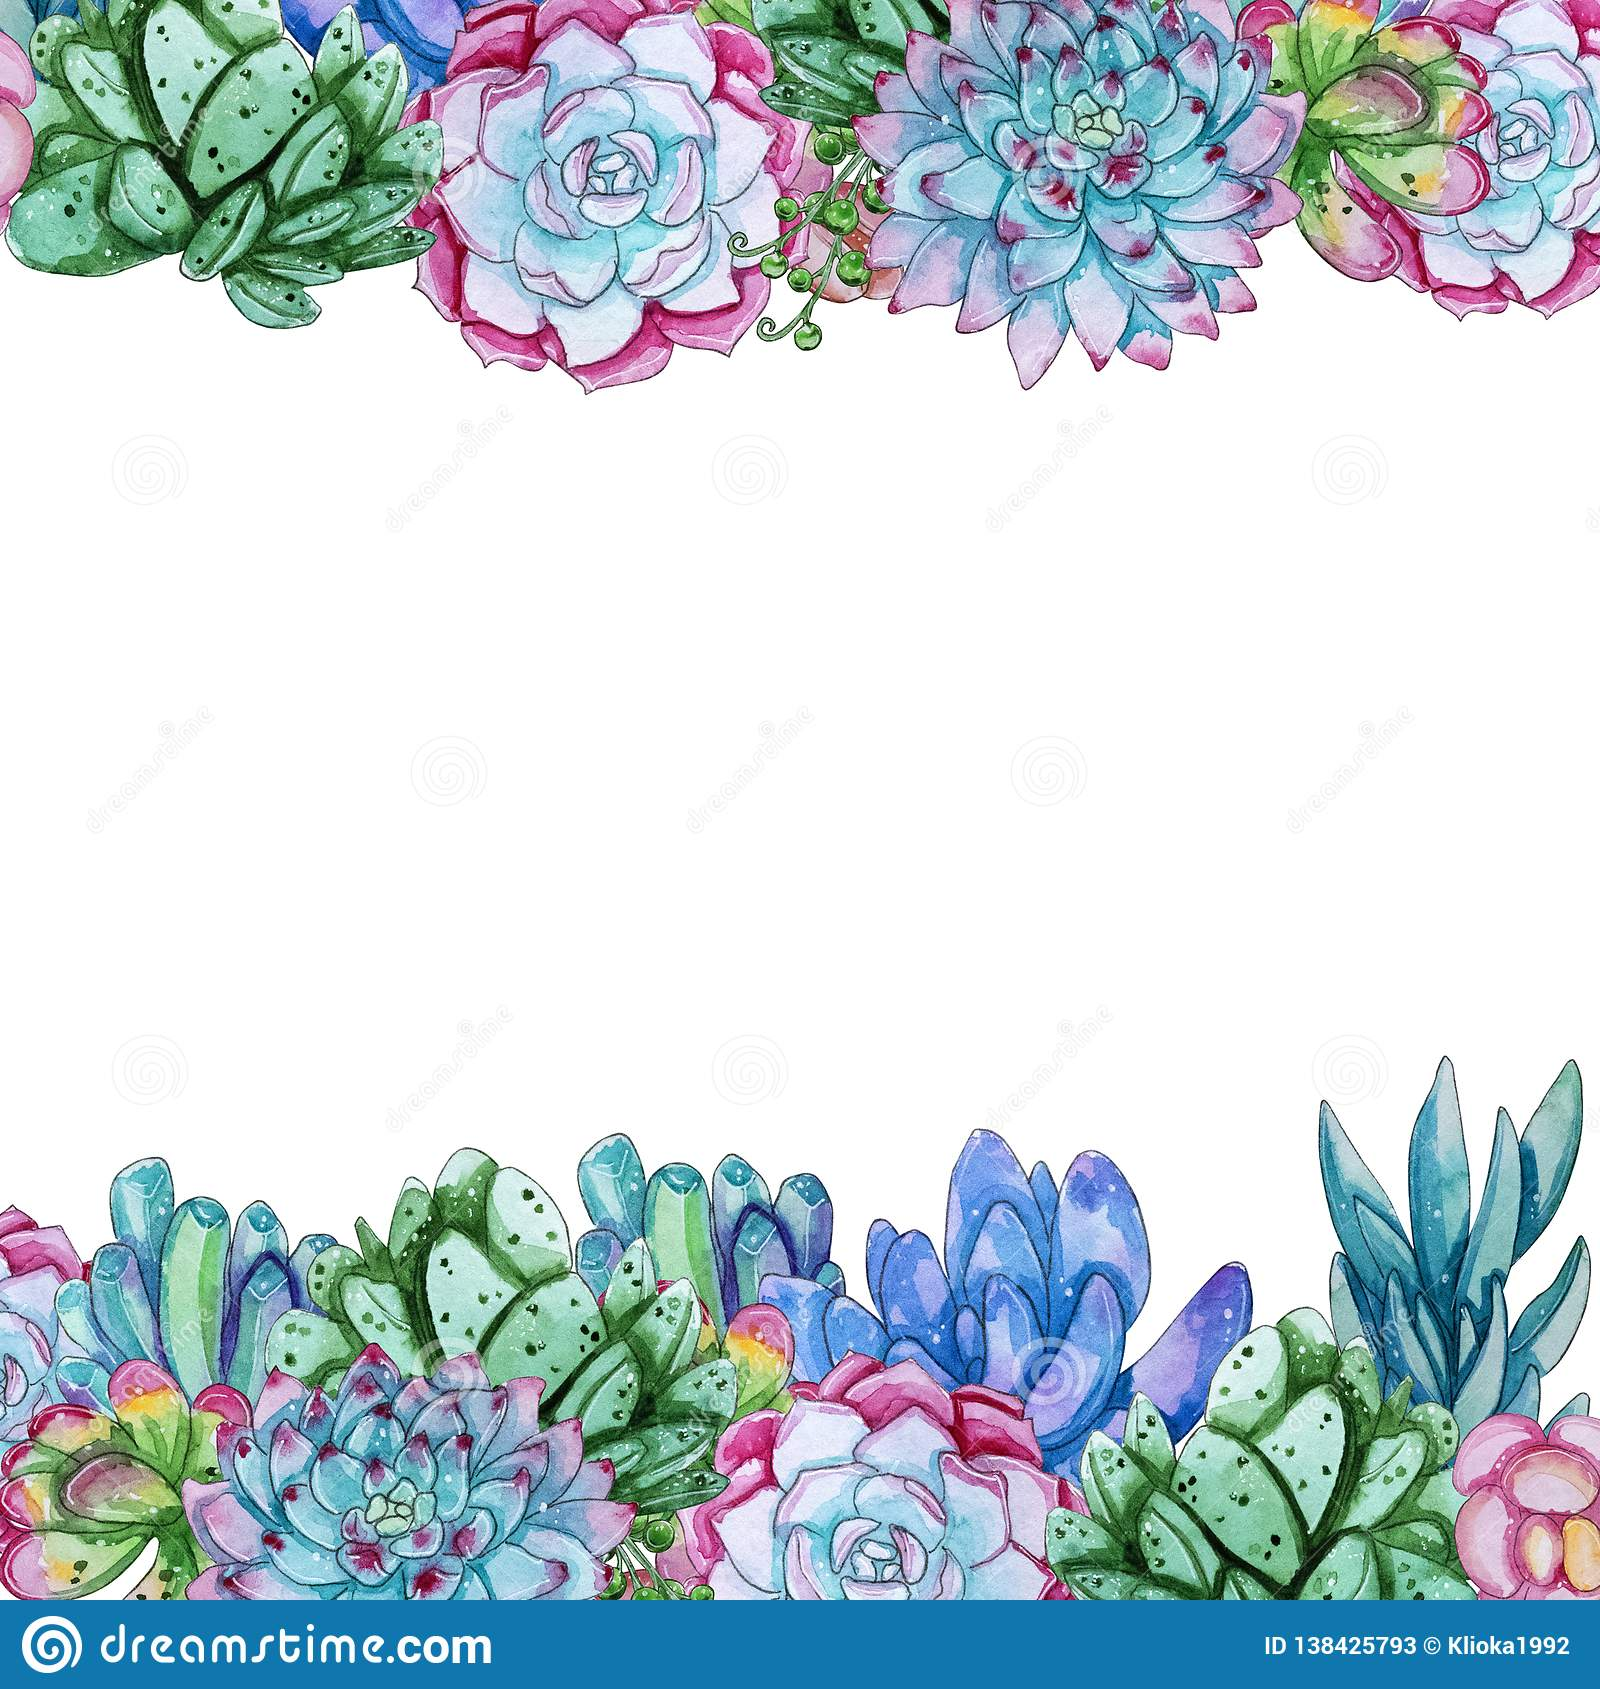 Watercolor Succulent Flowers Template Isolated On White Background Stock Illustration Illustration Of Foliage Natural 138425793